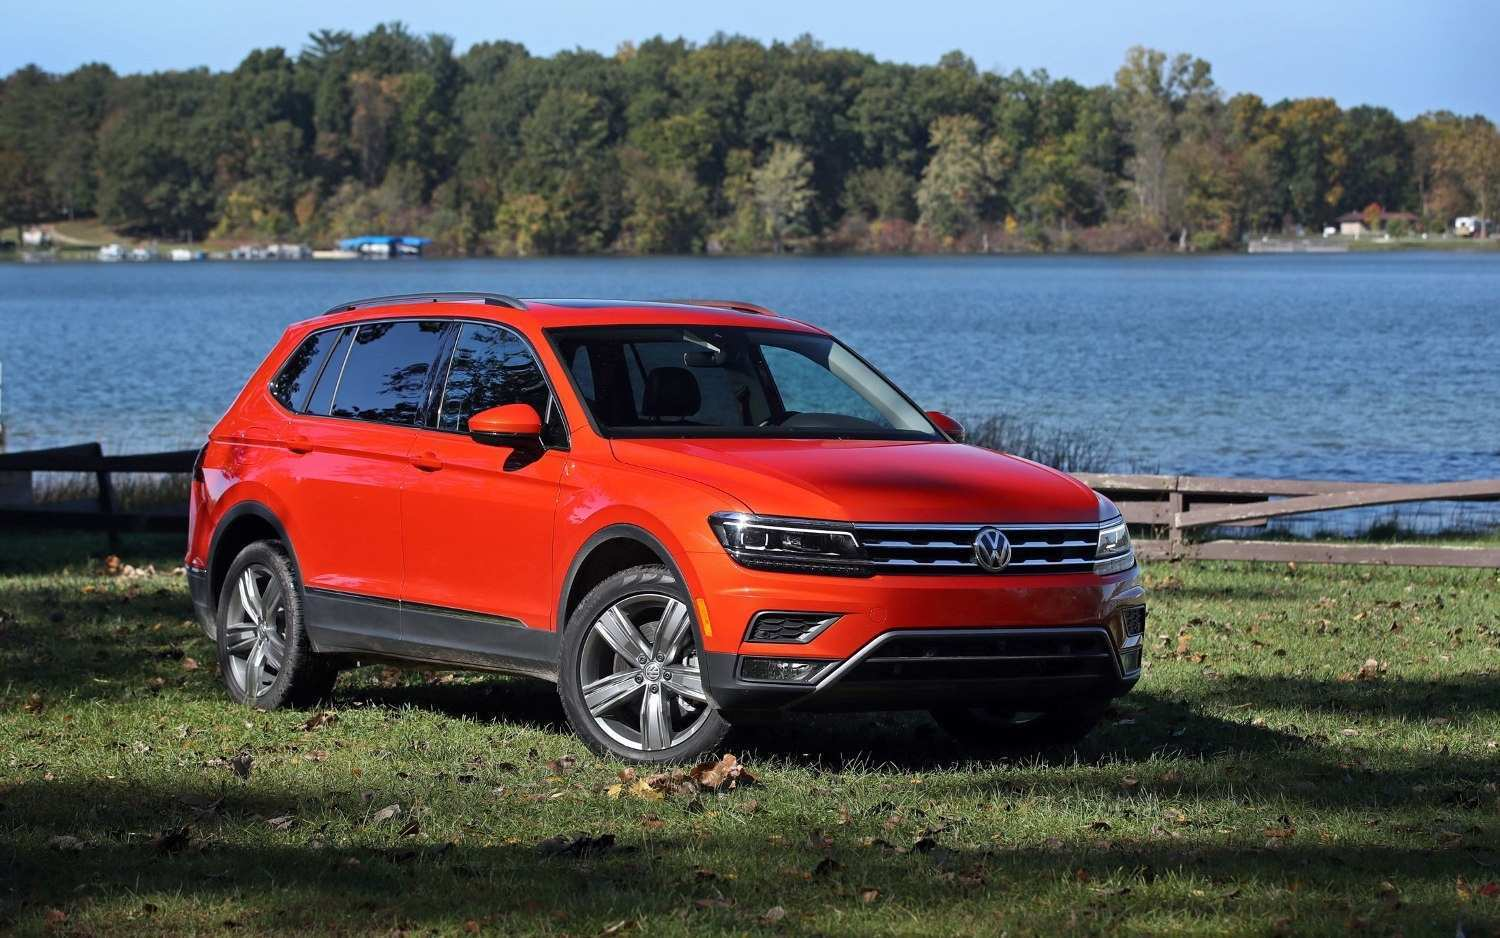 60 The Best Volkswagen Tiguan 2019 Review Concept Specs for Best Volkswagen Tiguan 2019 Review Concept